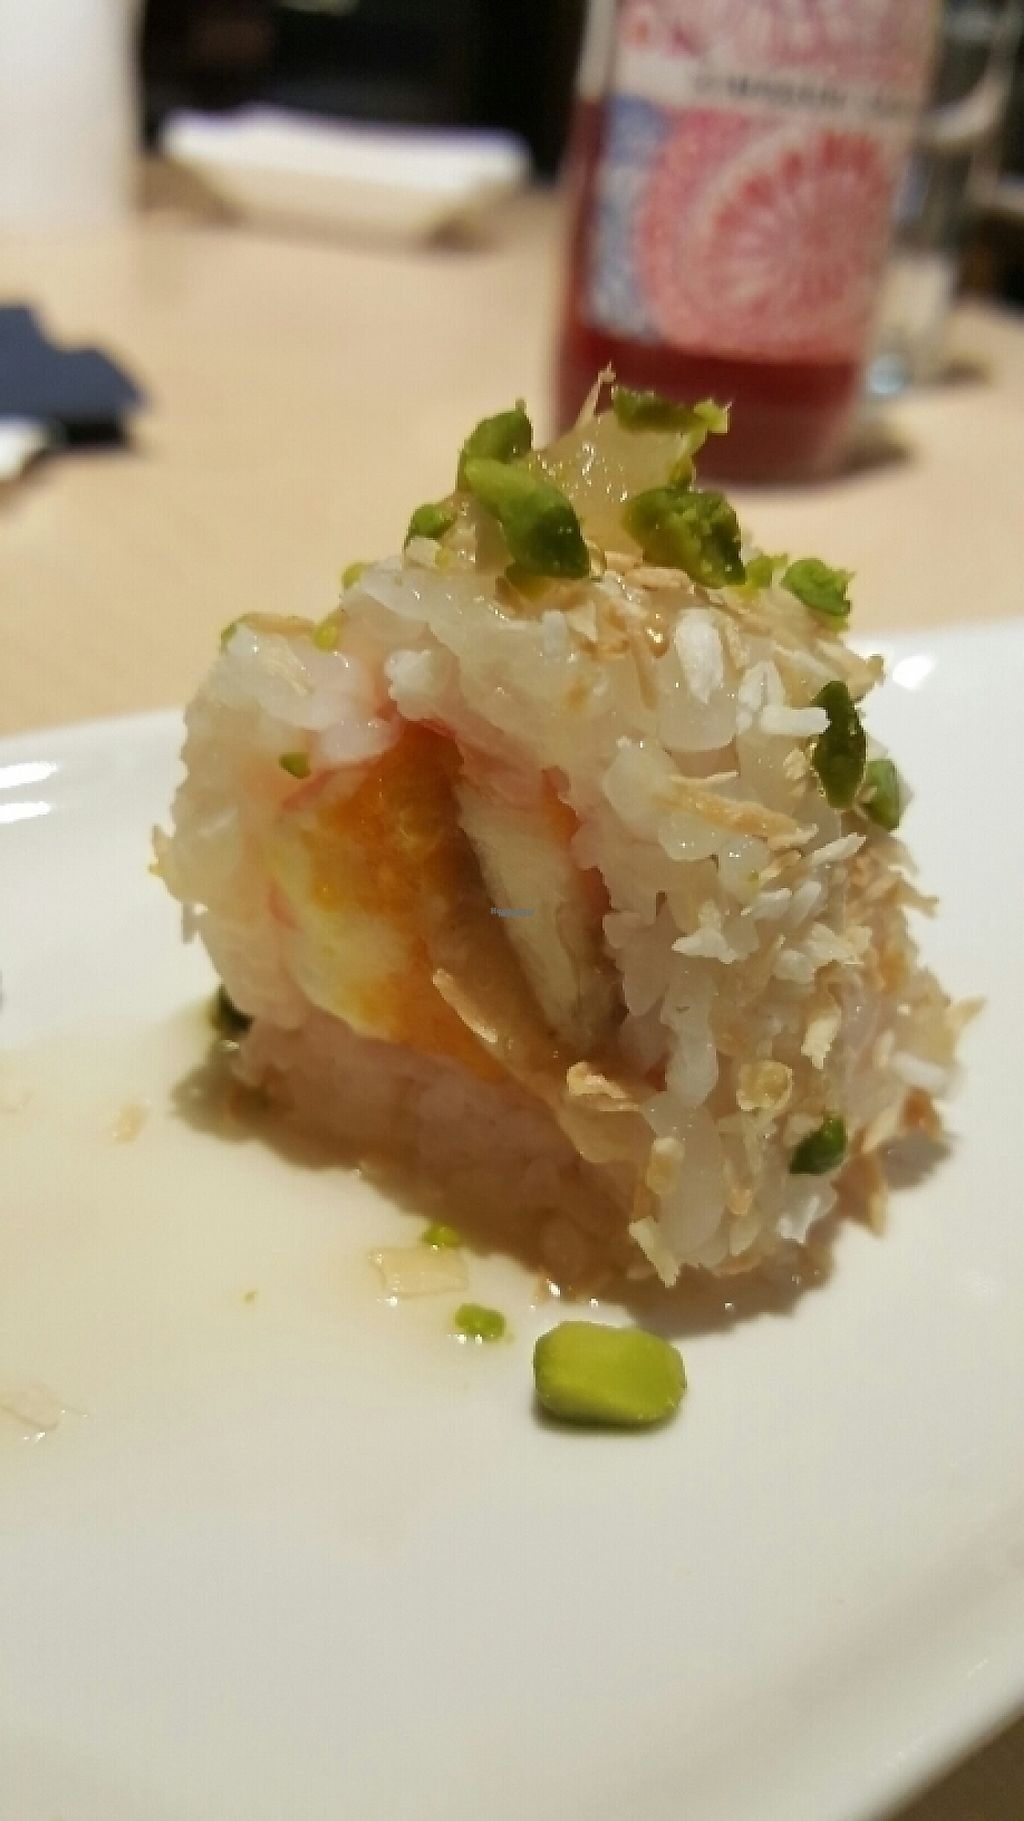 "Photo of MakiMaki Sushi Green  by <a href=""/members/profile/TinaEstrella"">TinaEstrella</a> <br/>sweet inside out dessert with pistachio, coconut, banana <br/> December 21, 2016  - <a href='/contact/abuse/image/84303/203812'>Report</a>"